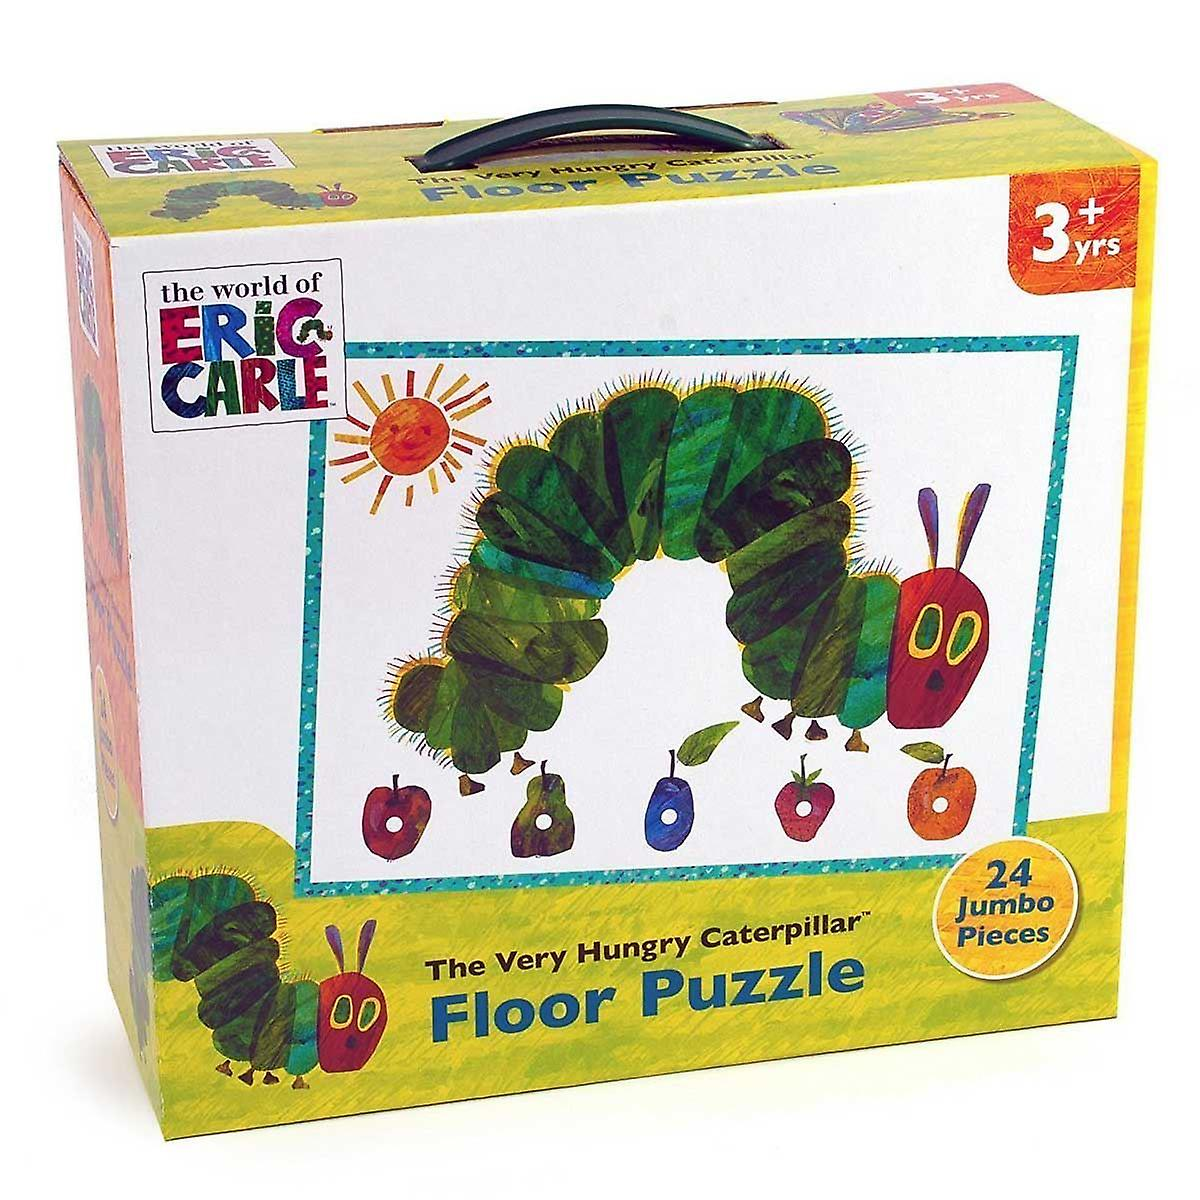 The Very Hungry Caterpillar Jumbo Floor Puzzle 24 Pieces